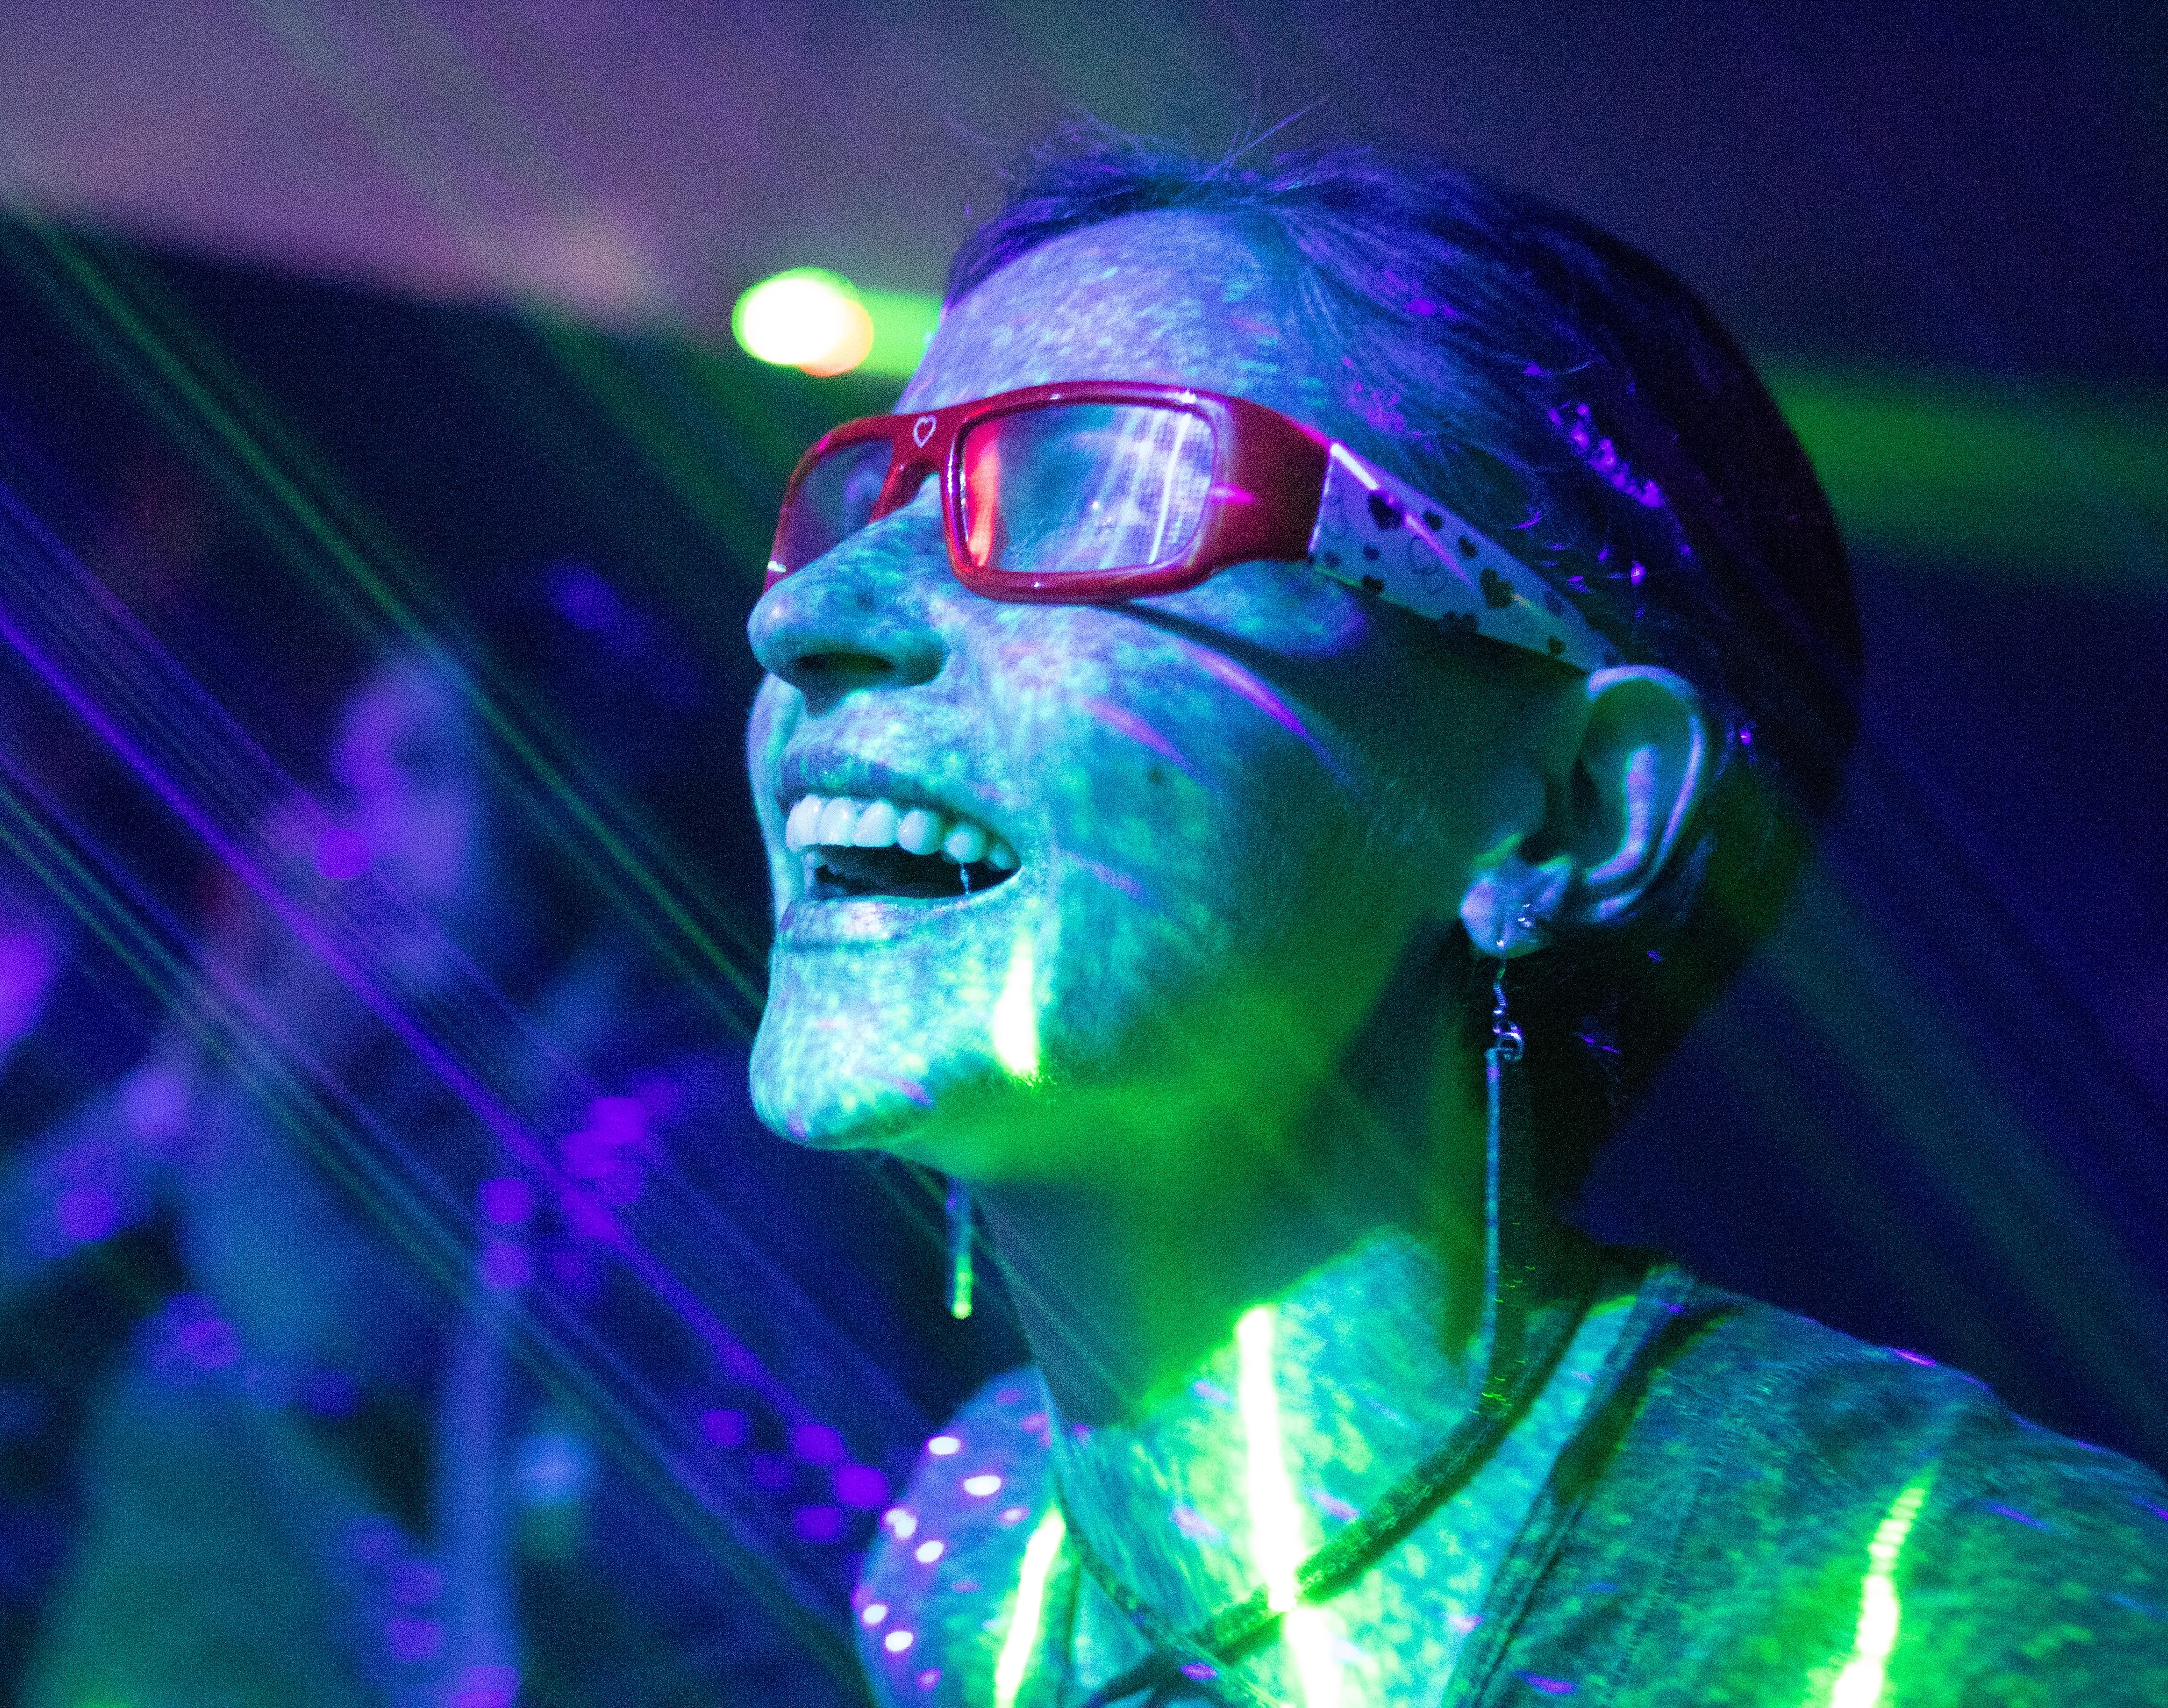 Study finds microdosing psychedelics can be beneficial, but not in the way that users most expect